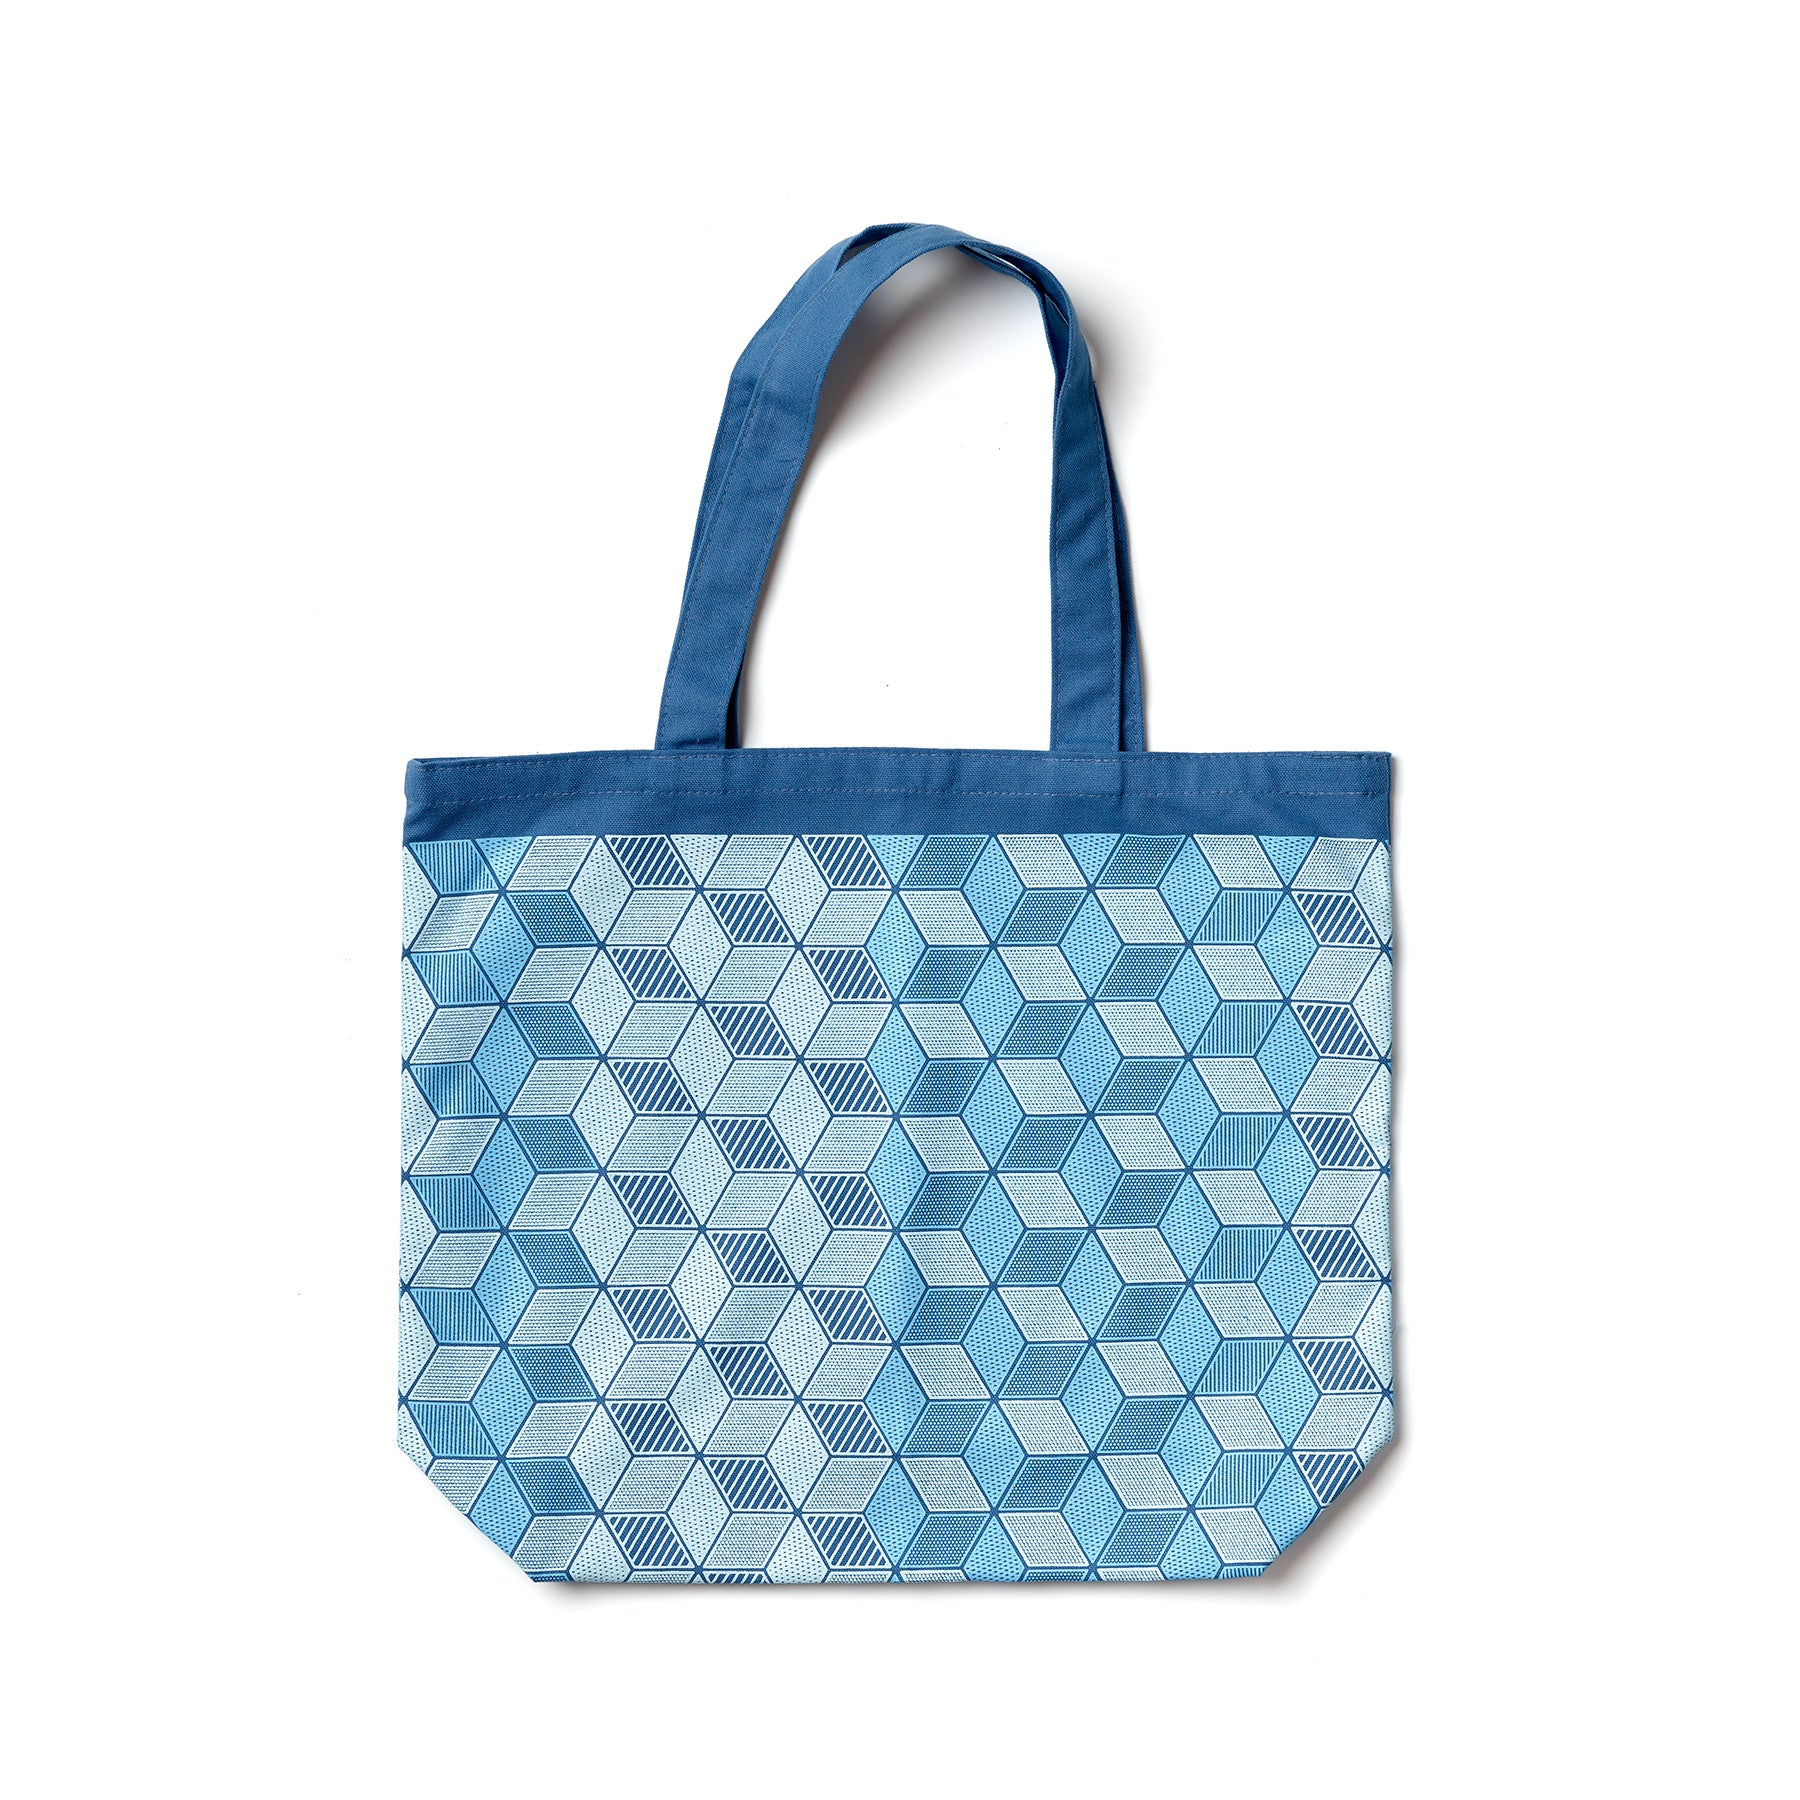 Mural Tote in Bright Blue Zoom Image 1